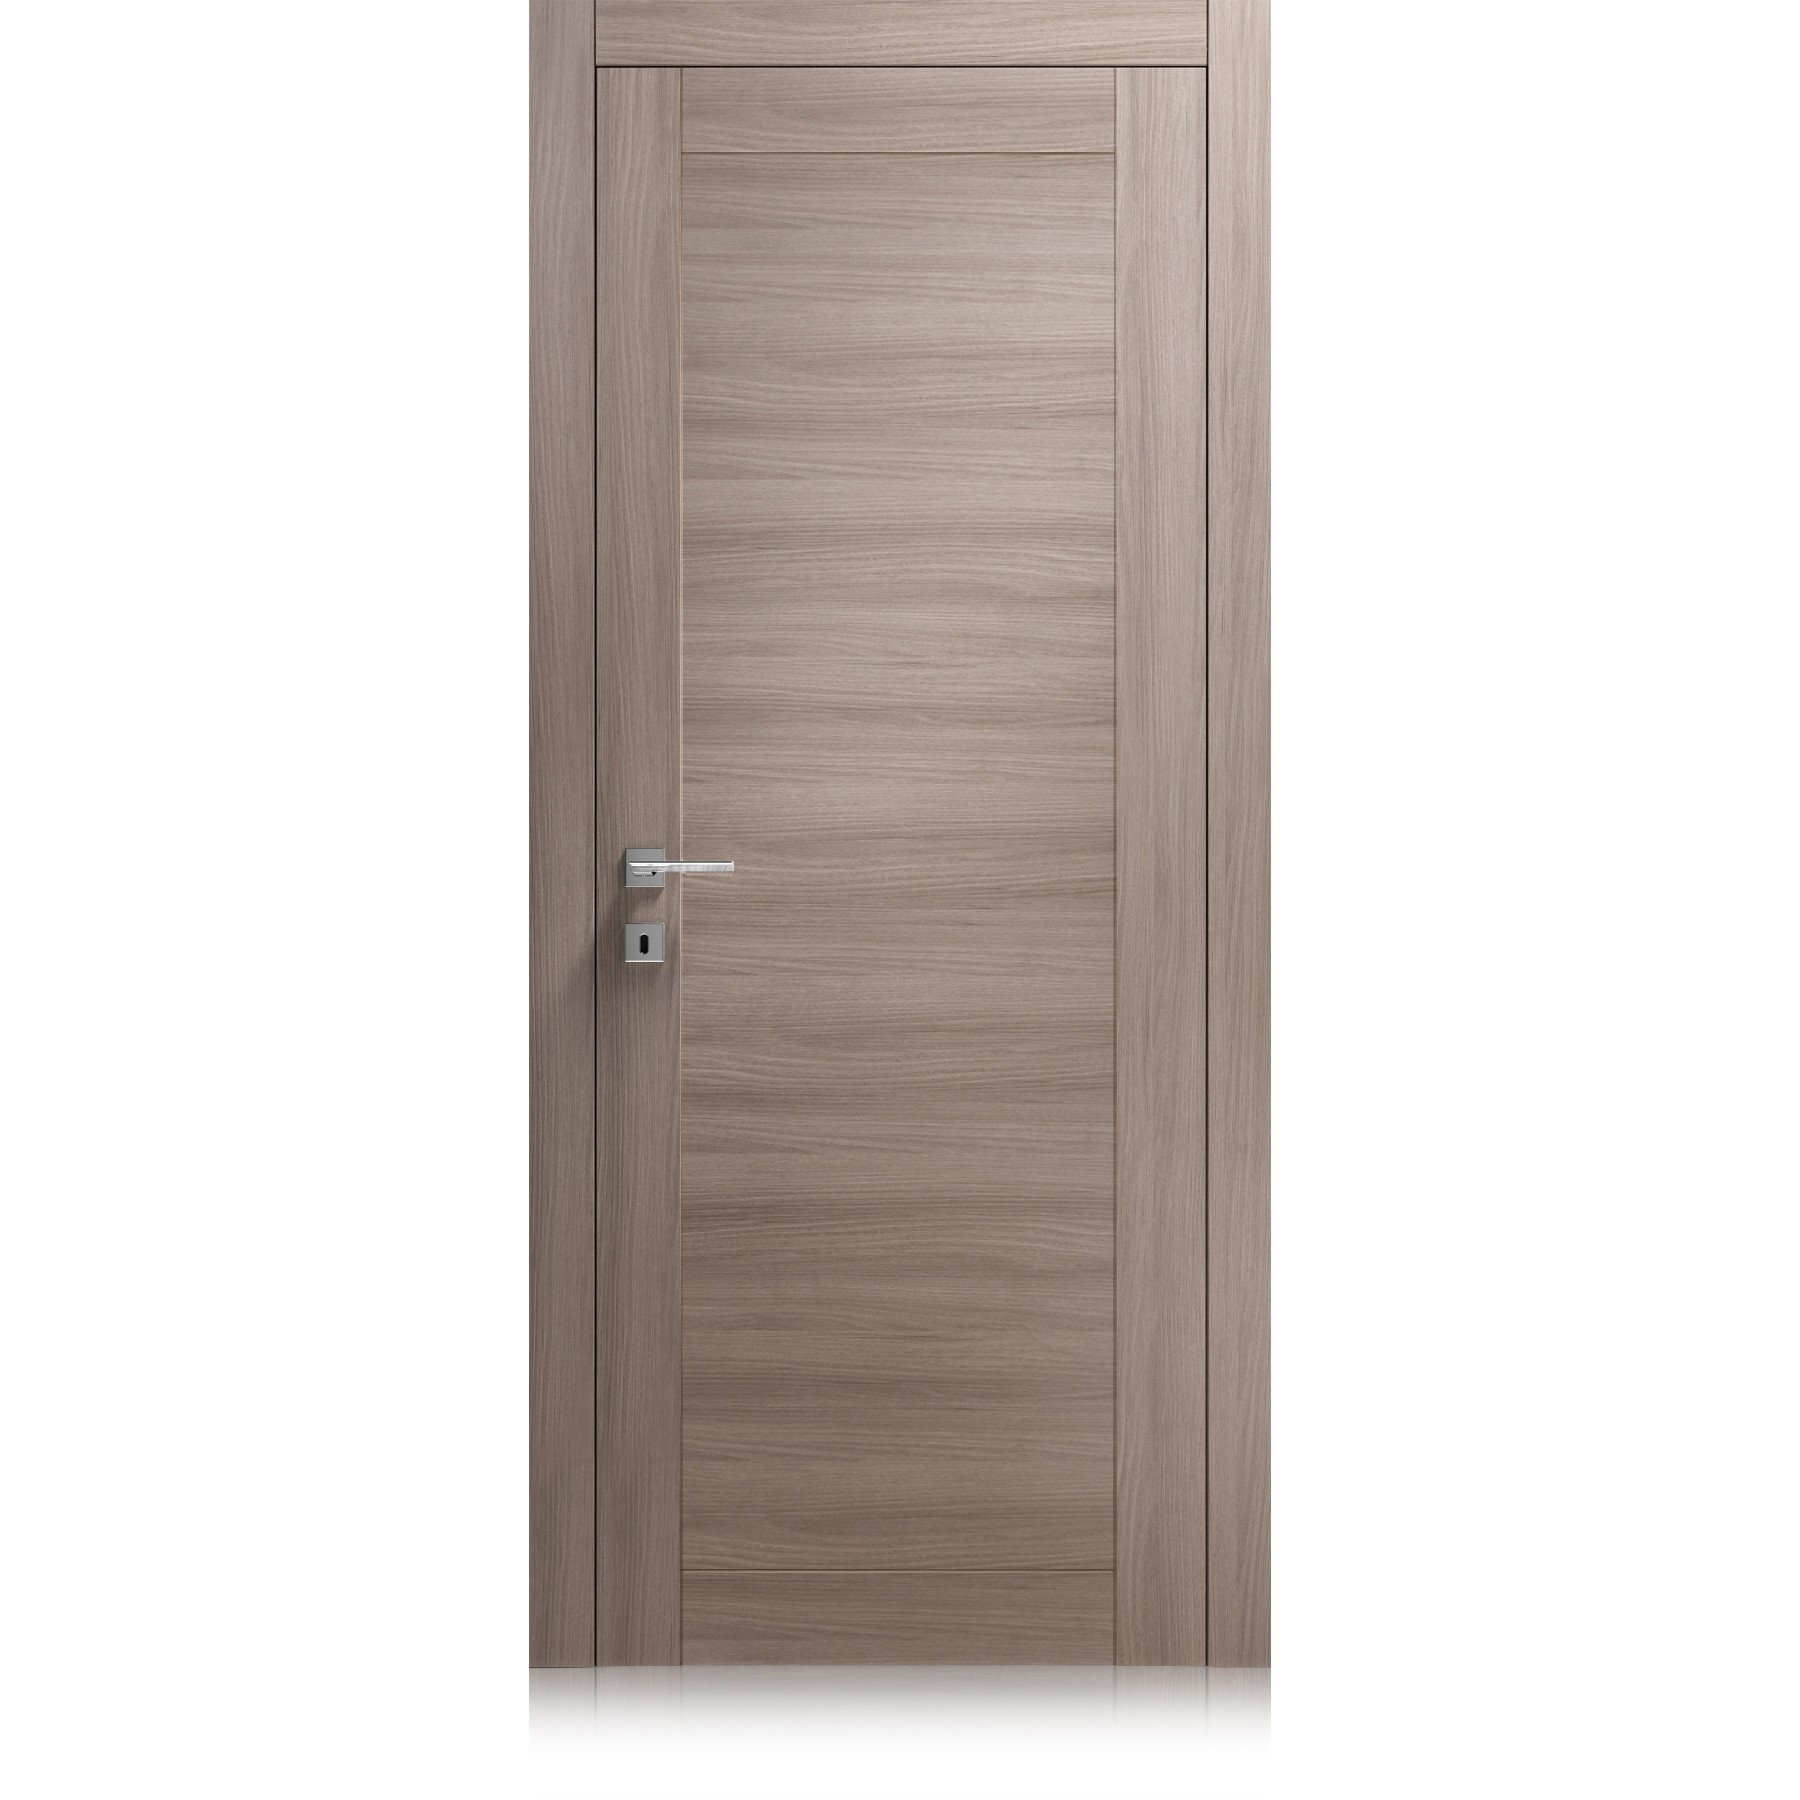 Area / 2 ontario polvere door